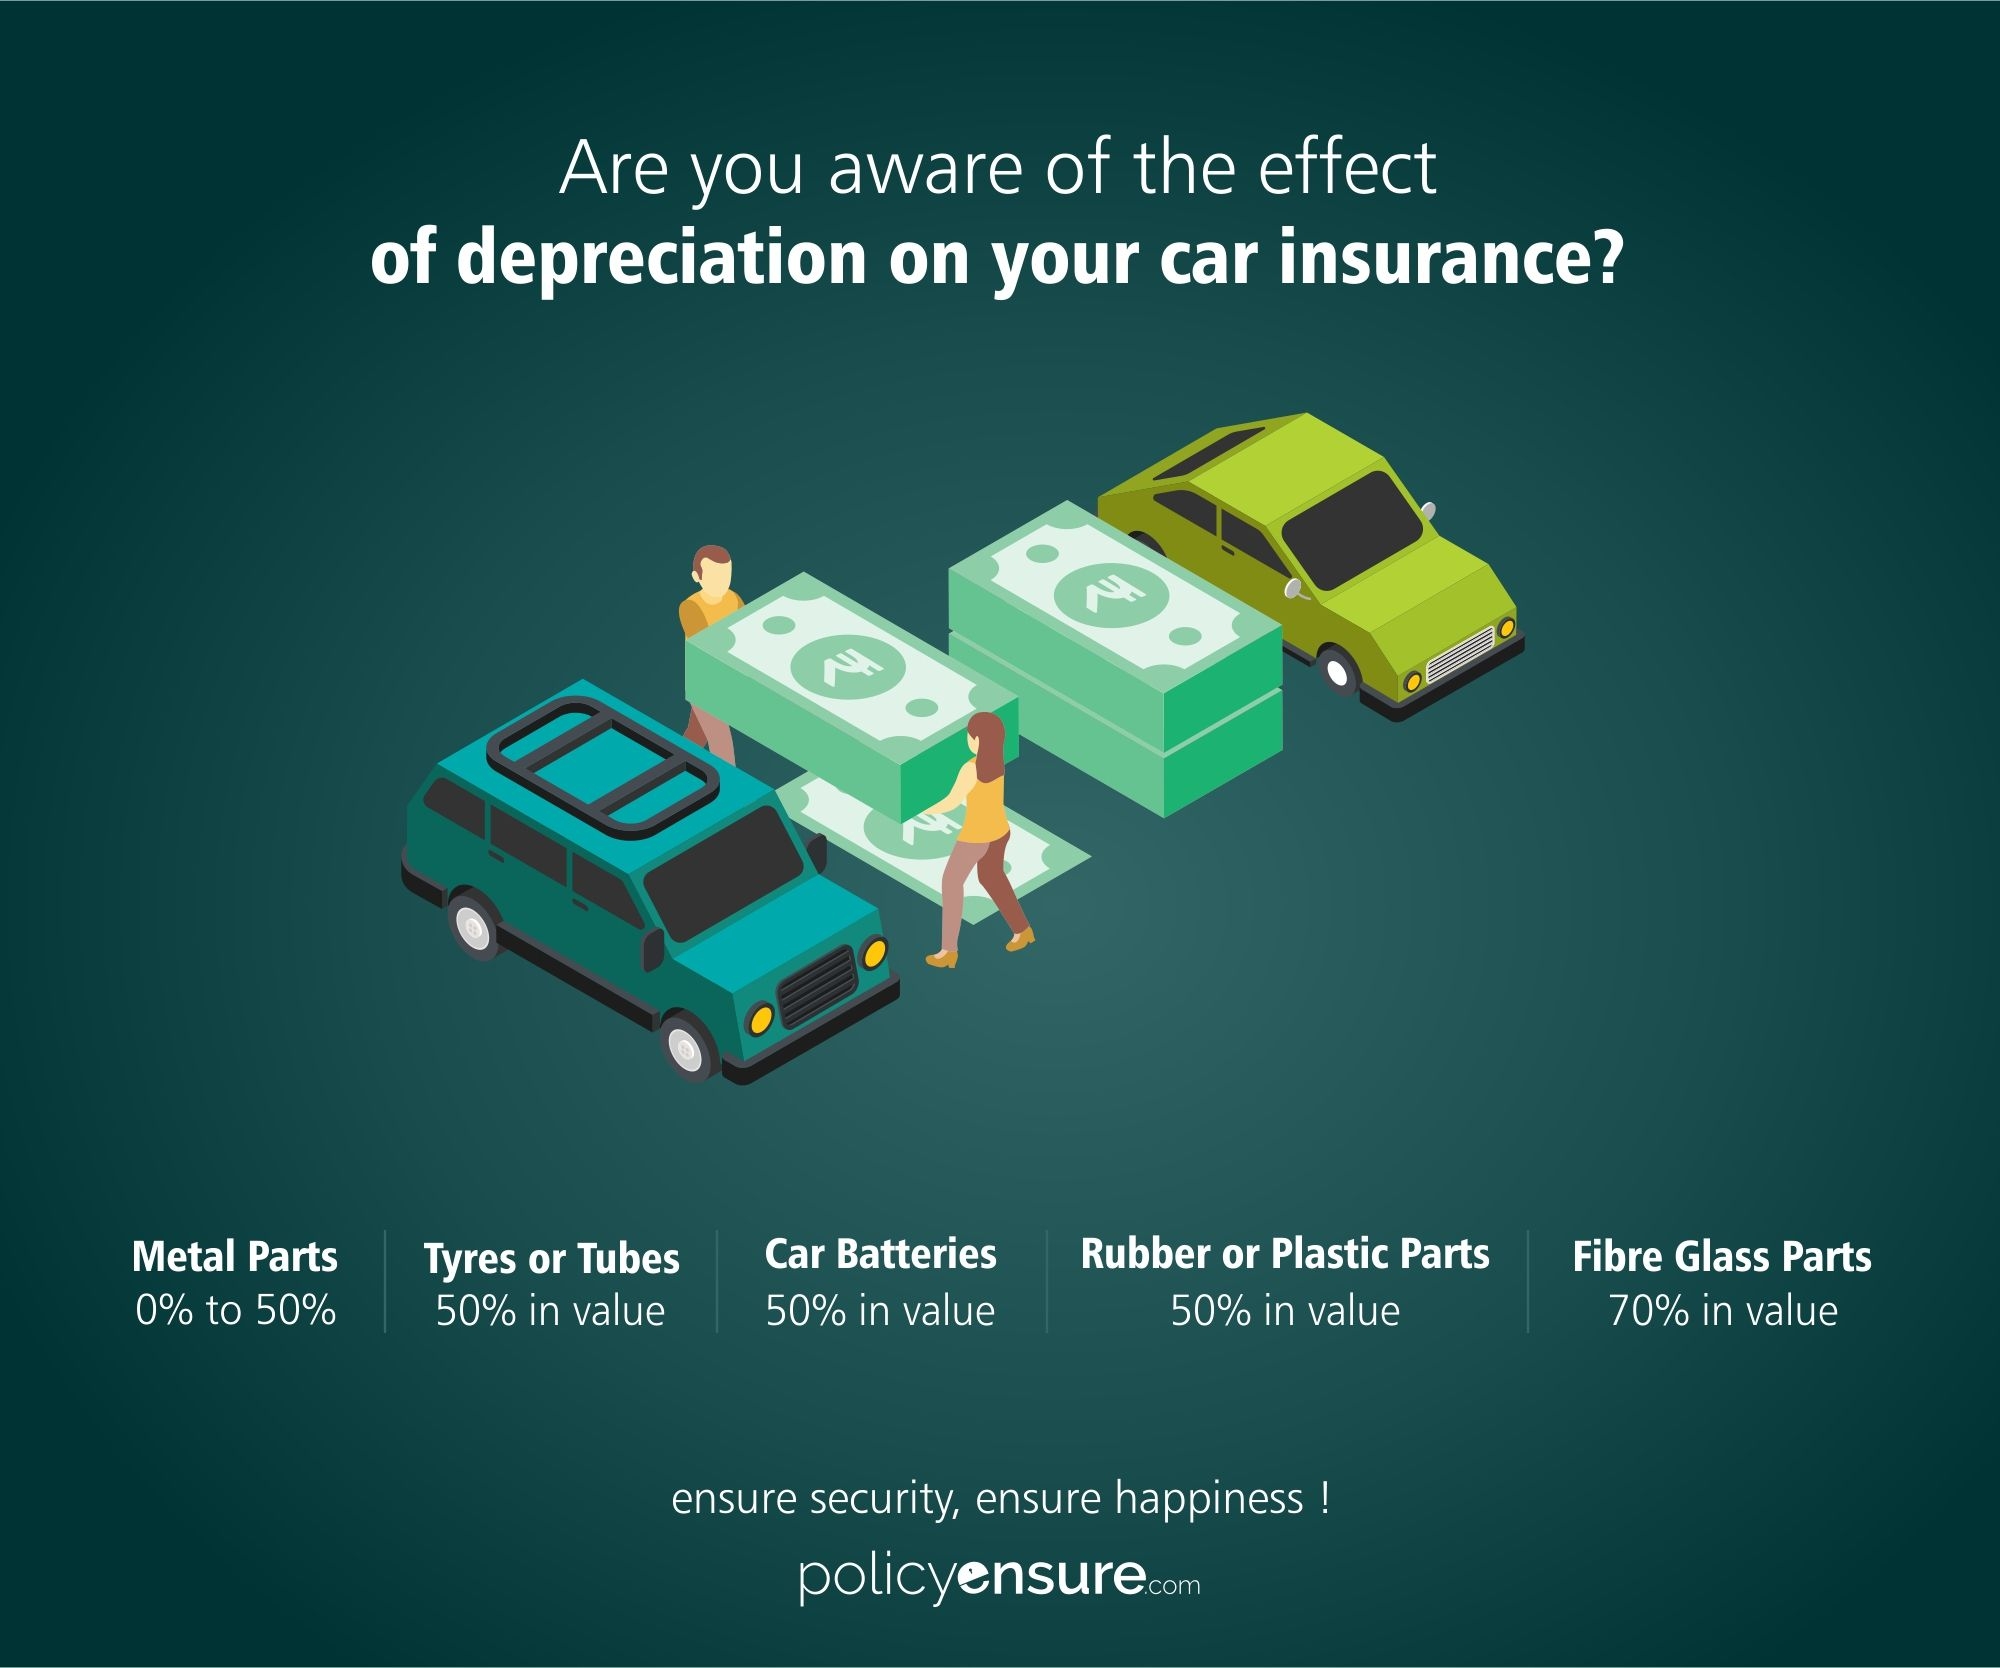 Are You Aware Of The Depreciation On Your Car Insurance